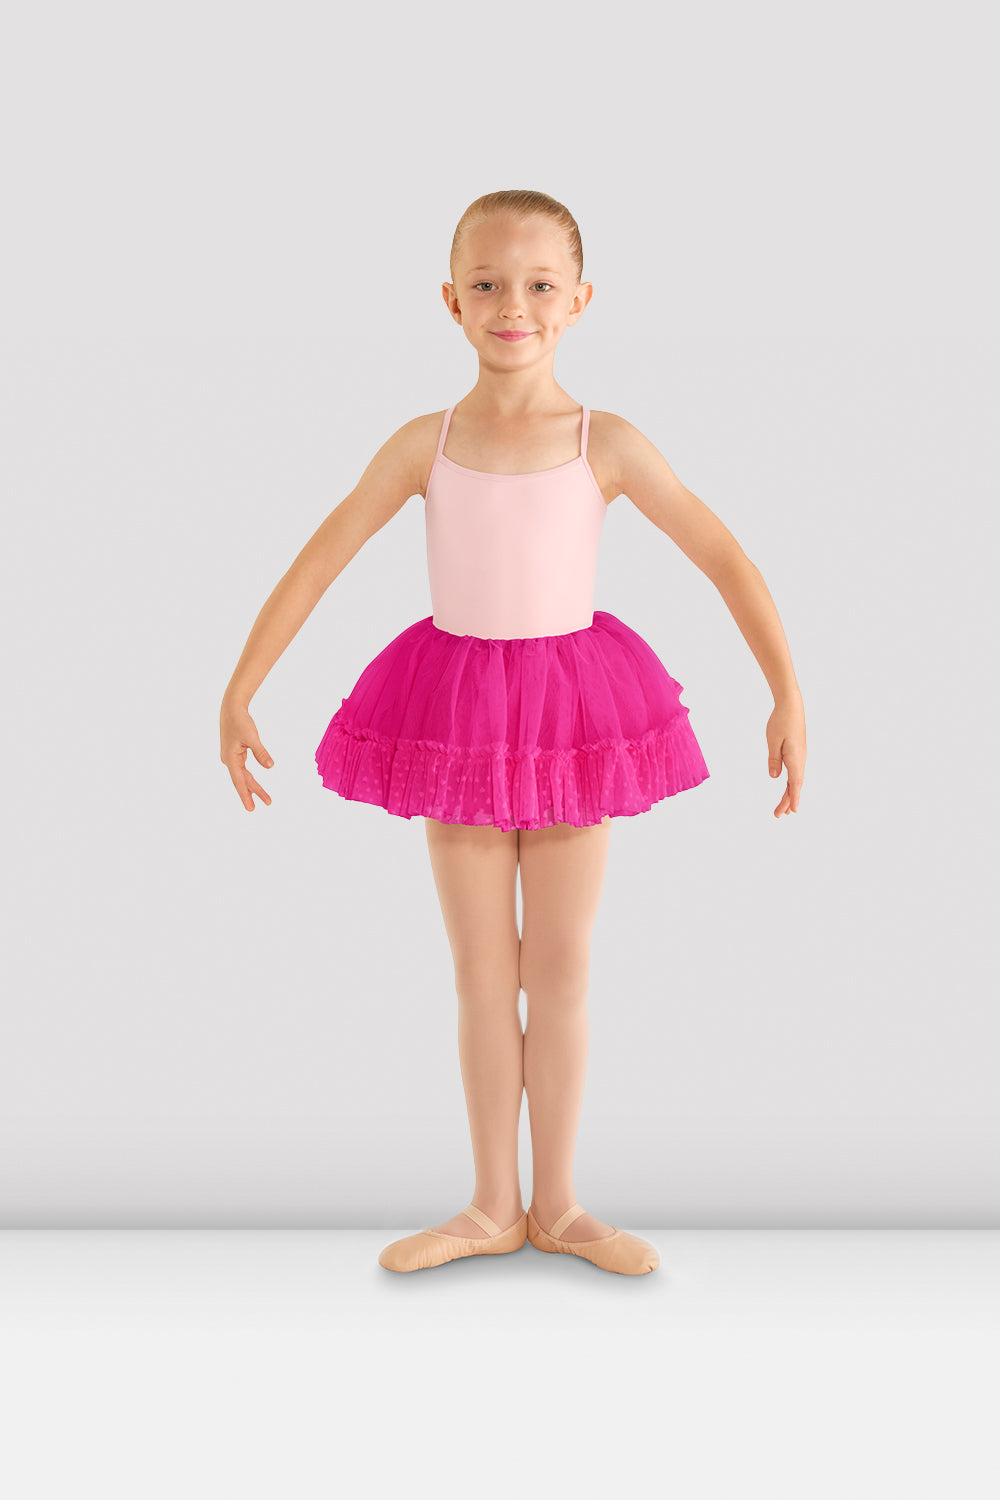 A young female ballet dancer wearing a candy pink camisole leotard with Girls Addelyn heart mesh tutu